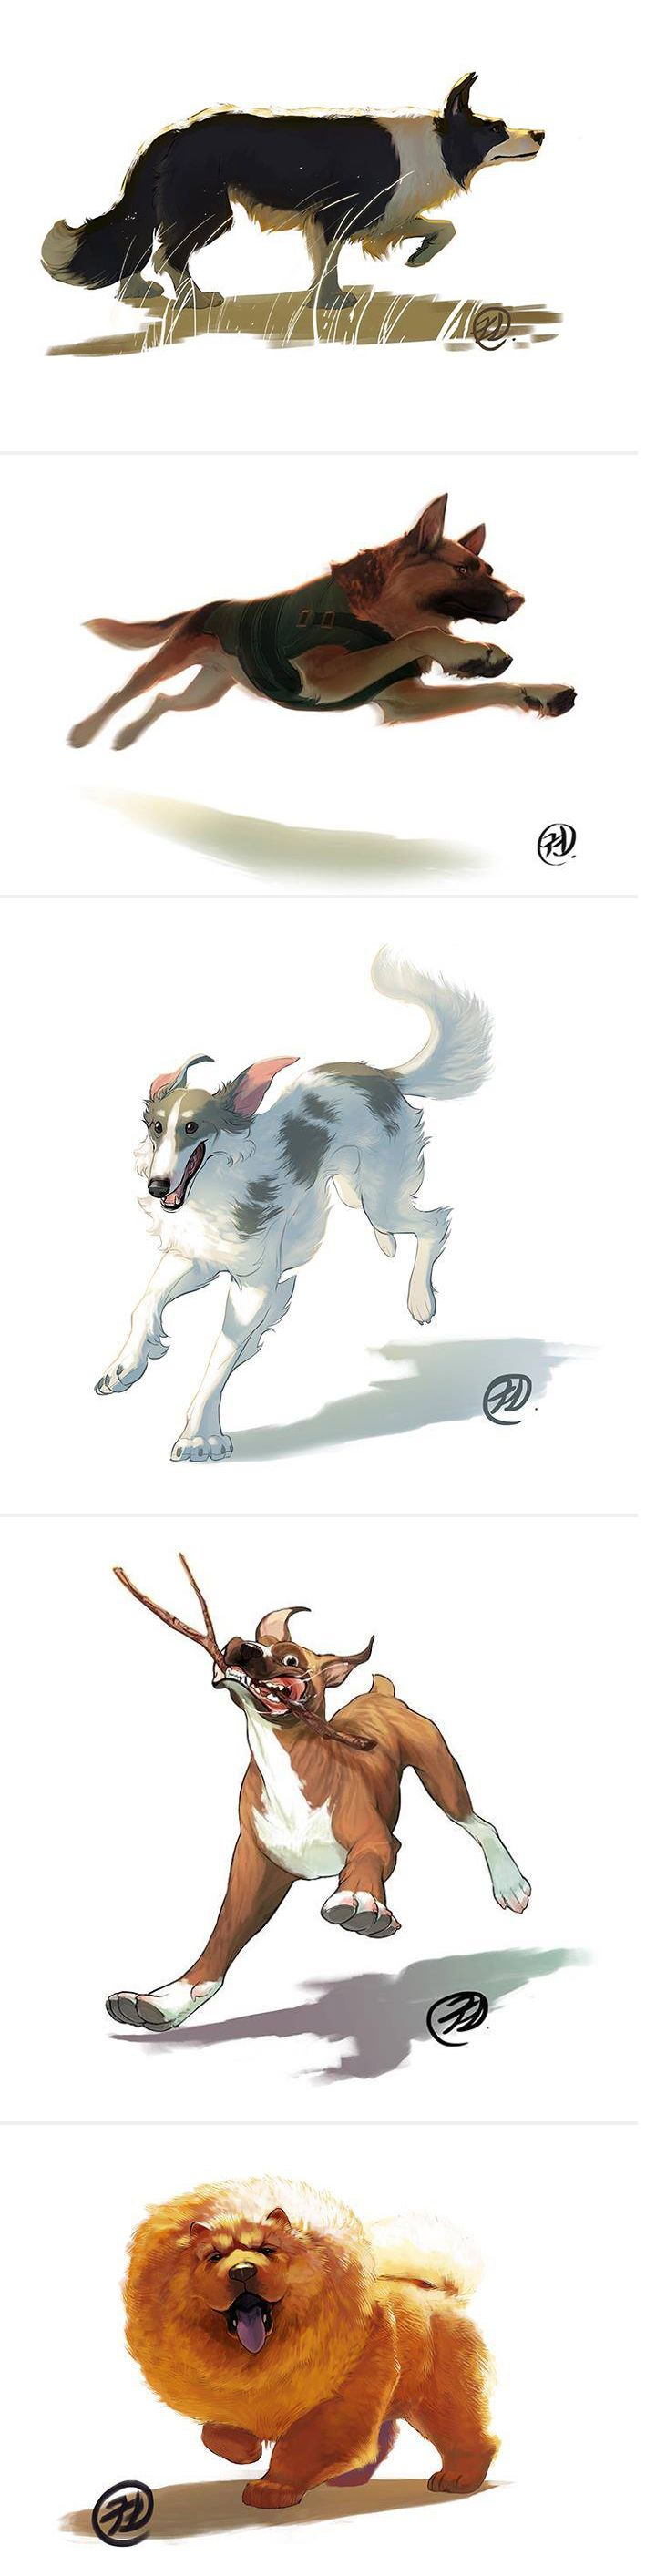 Daily Dog - illustration book - Crowdfunding project for Elisa Kwon on Catarse…